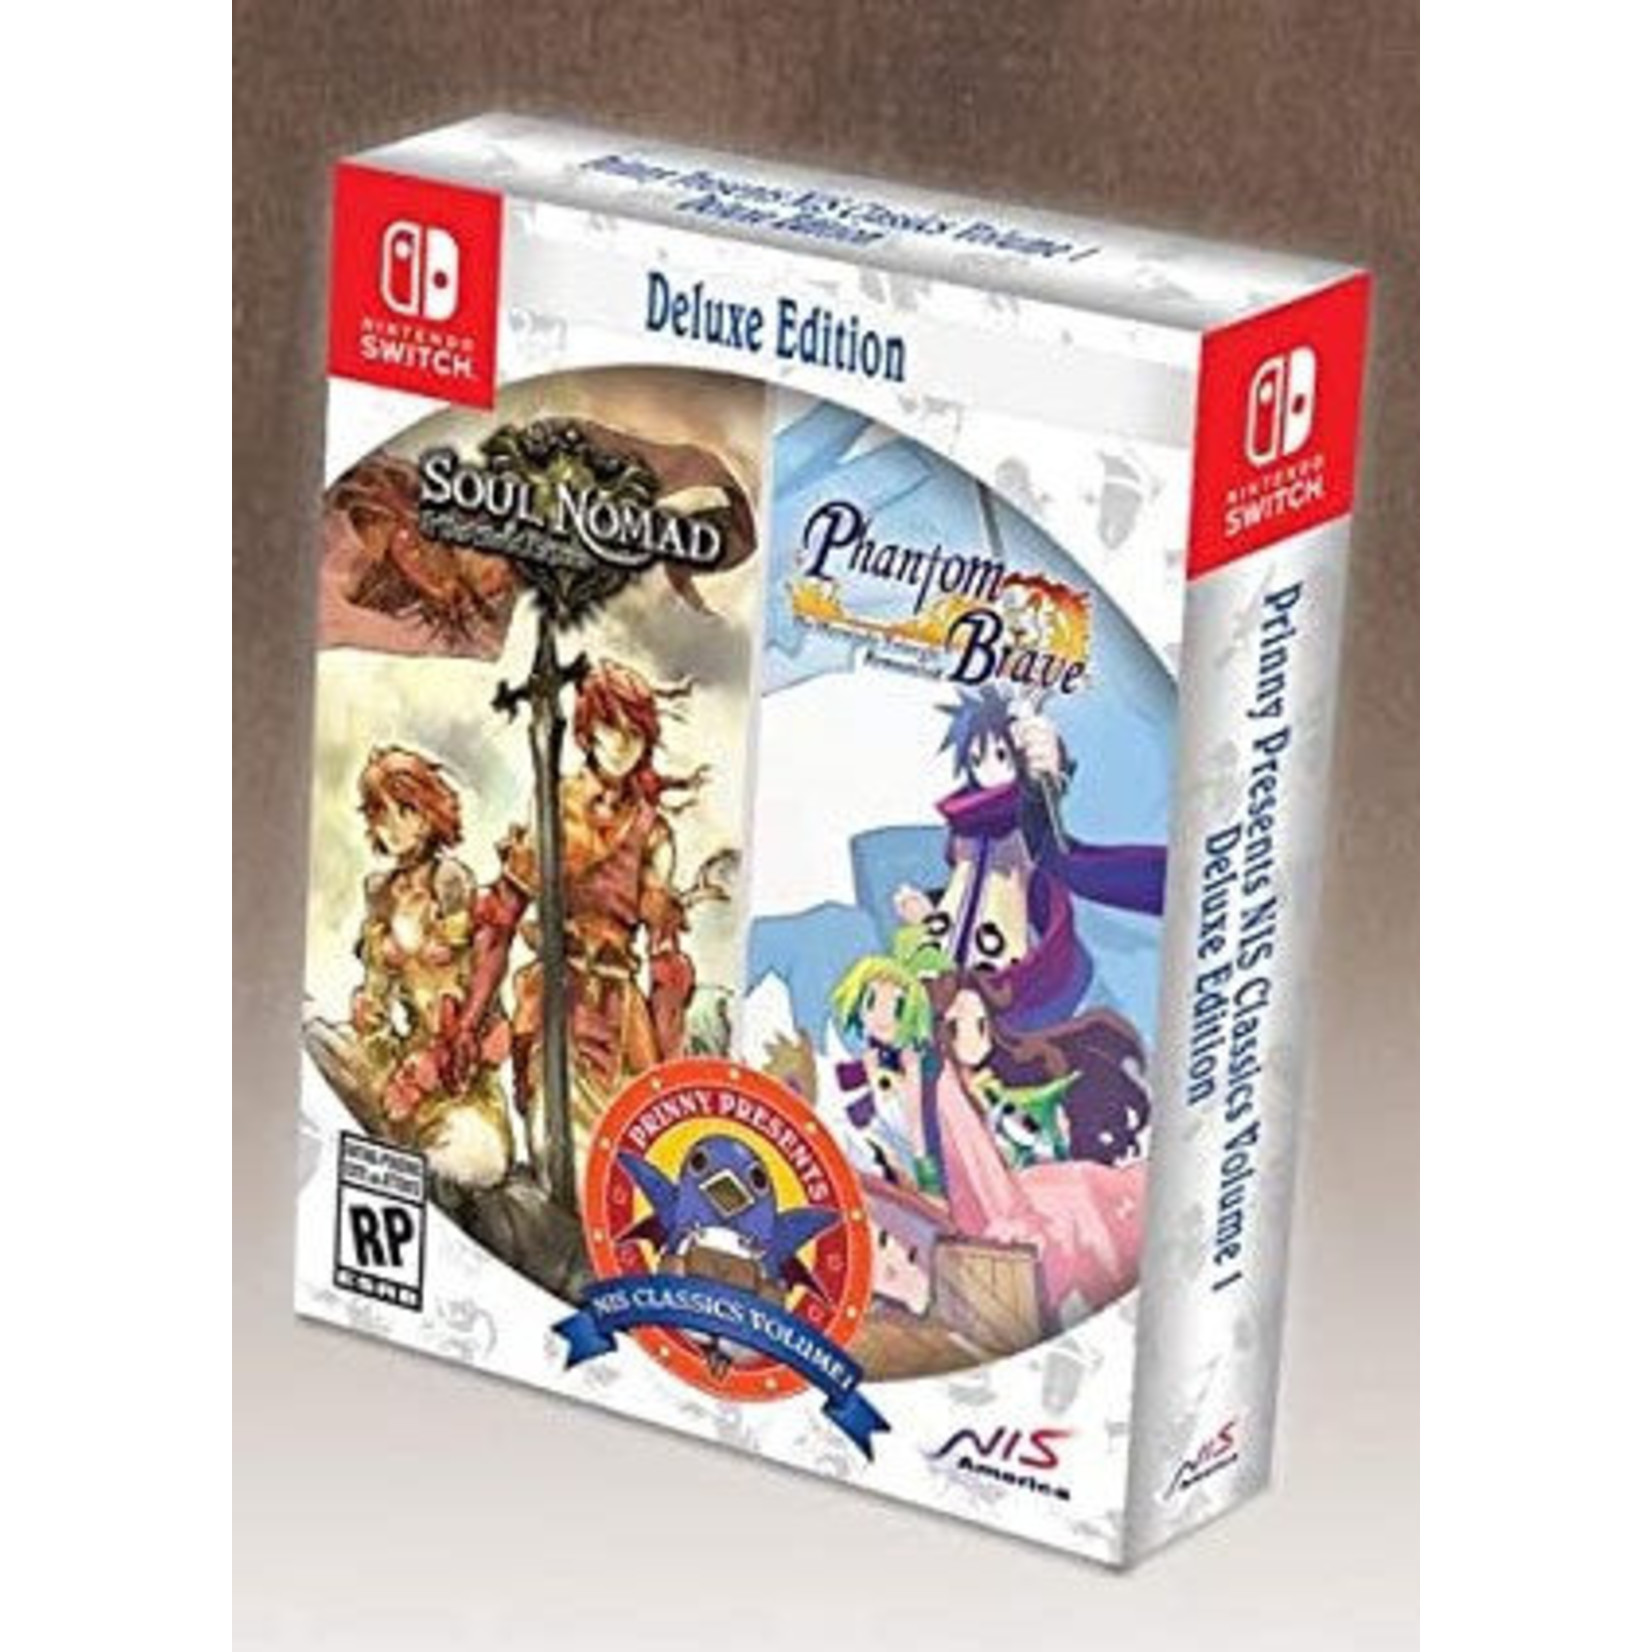 Switch-Prinny NIS Classic Volume 1 Deluxe Edition